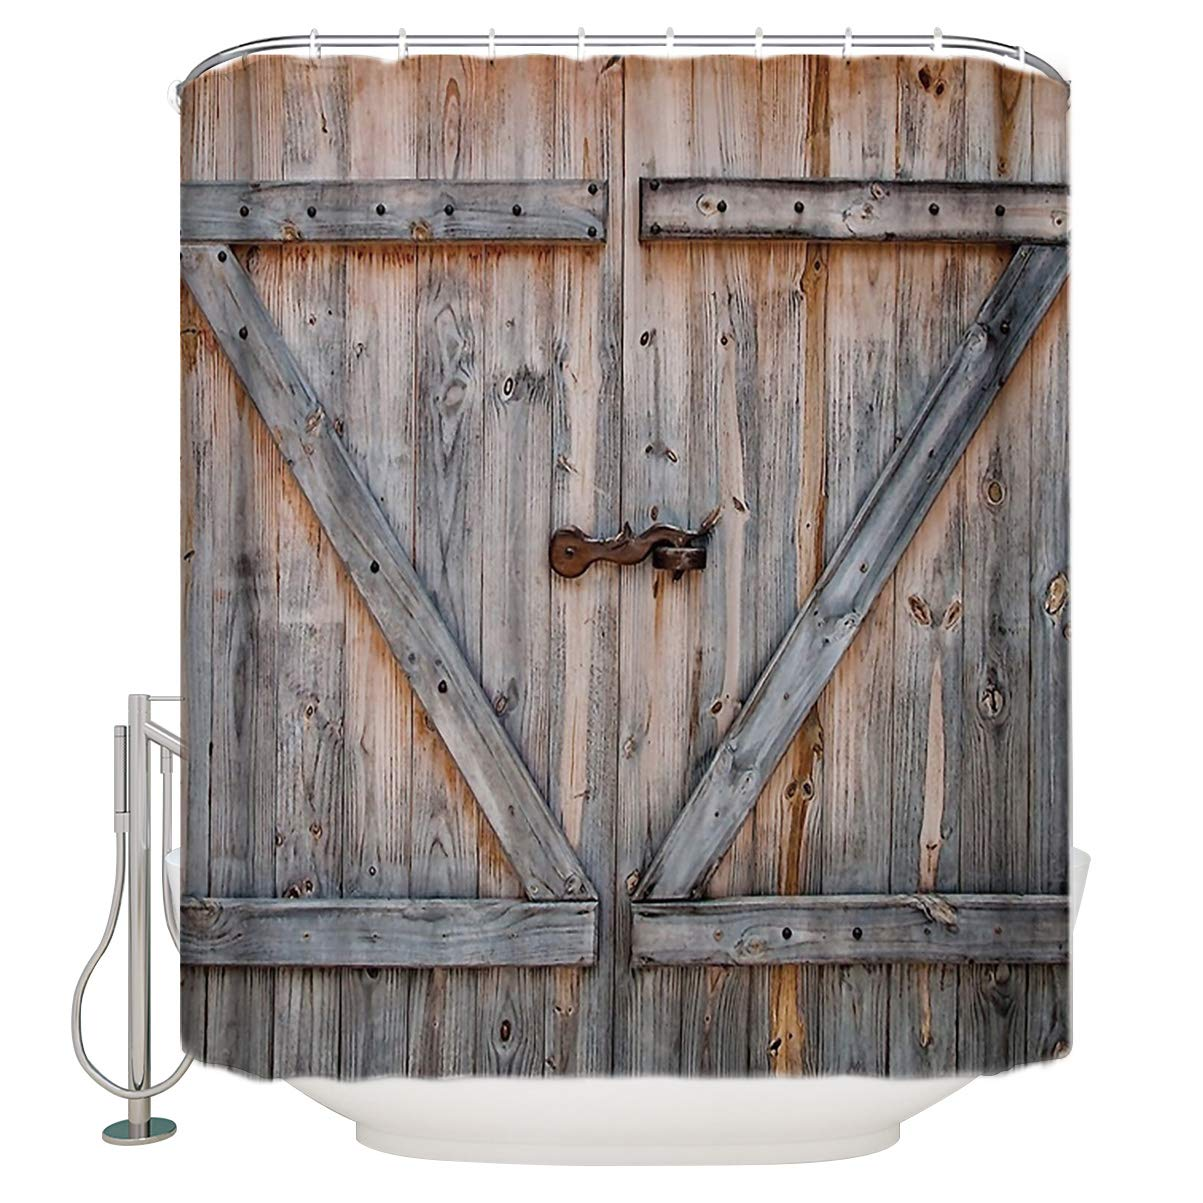 Rustic Country Barn Wood Door Shower Curtain,Waterproof and Mildewproof Polyester Fabric Bath Curtain Design Extra Long 72x96-Inch